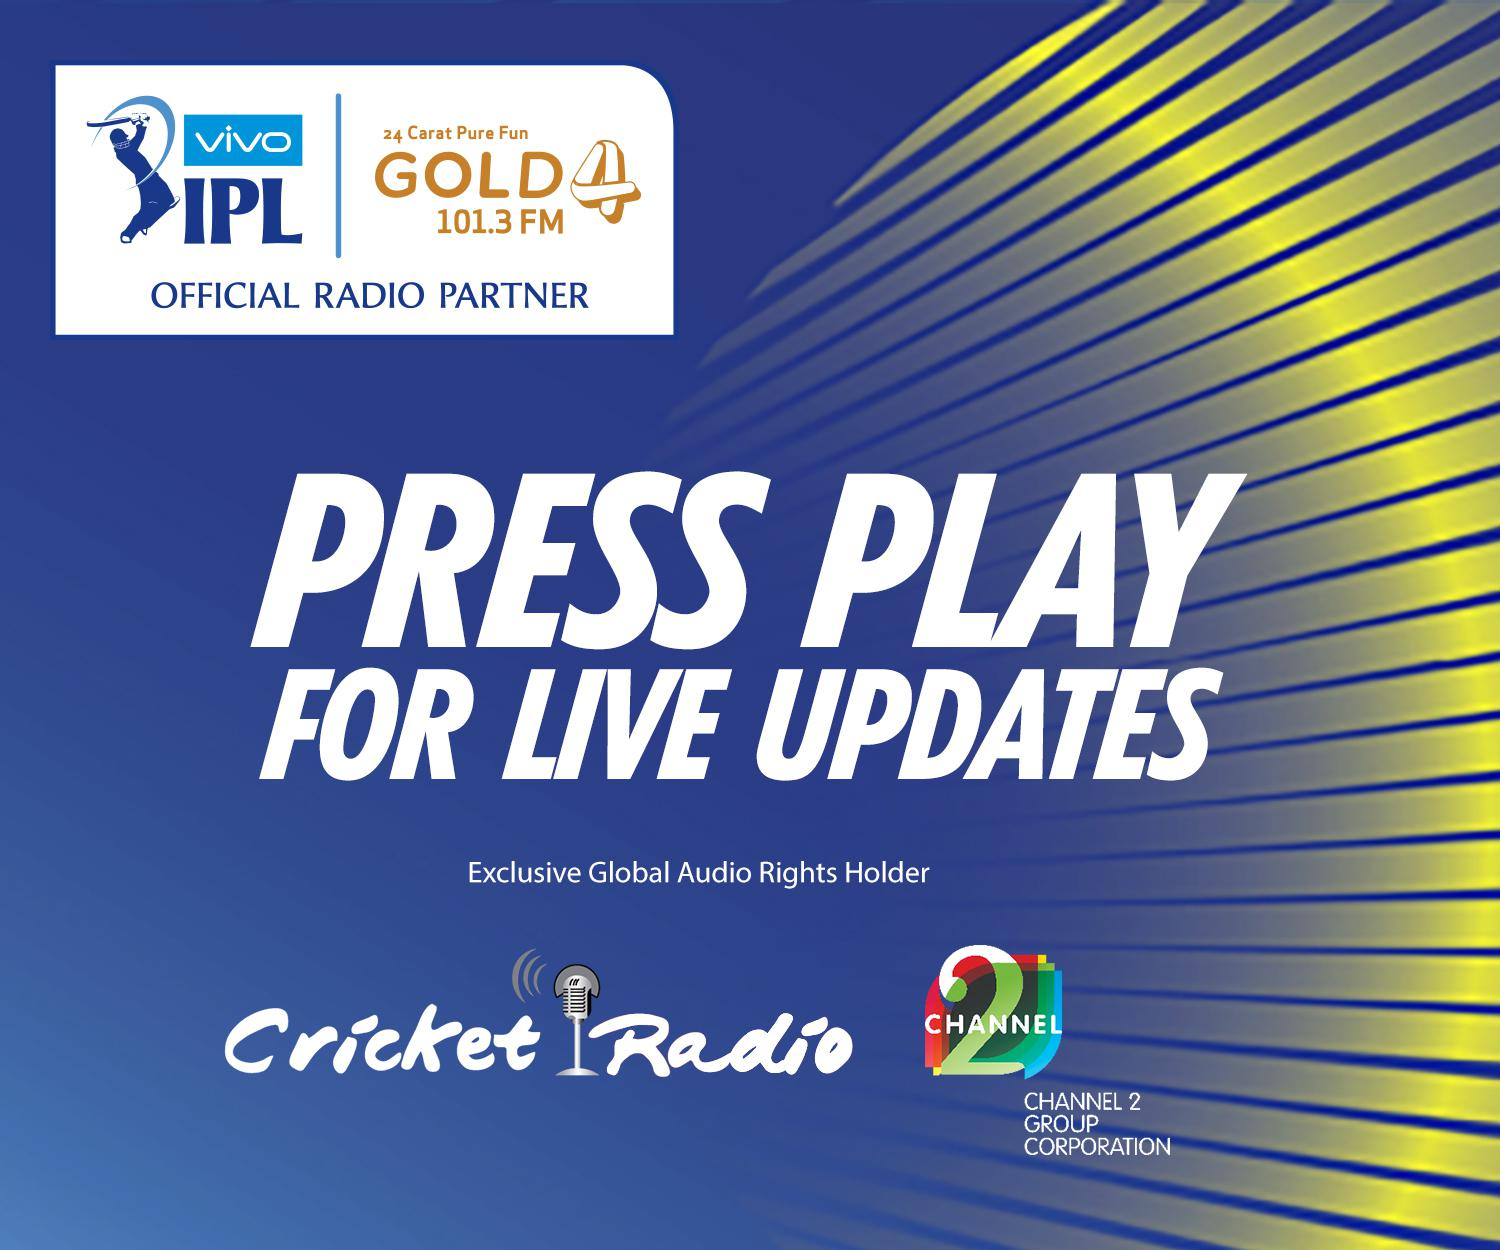 IPL press play for live updates